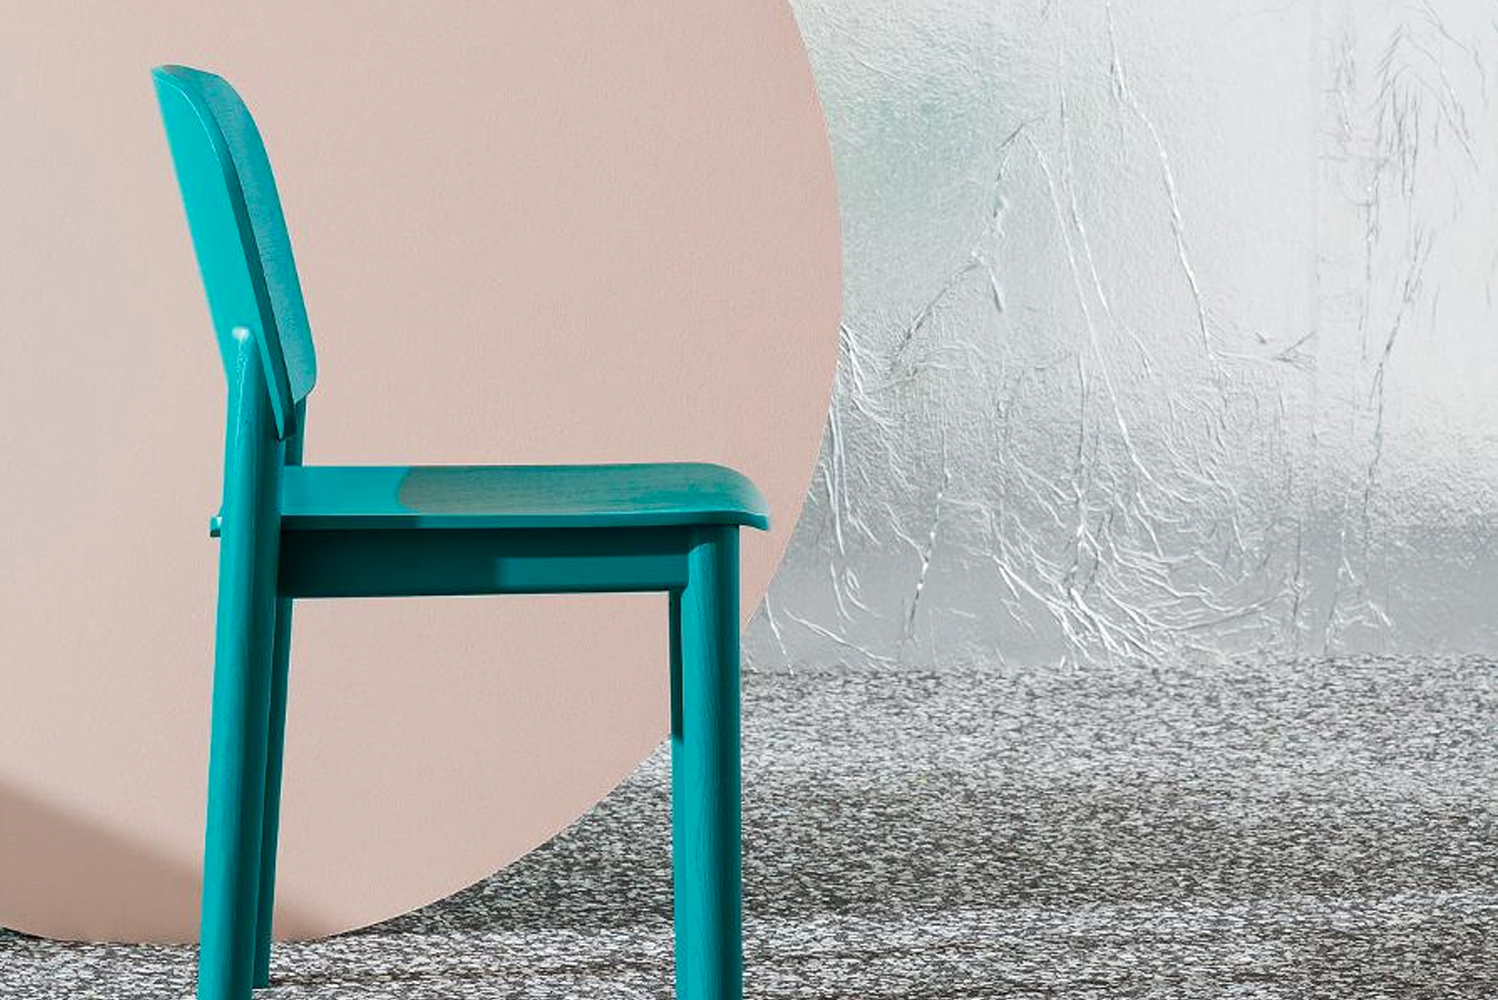 Introducing the White chair from Billiani.